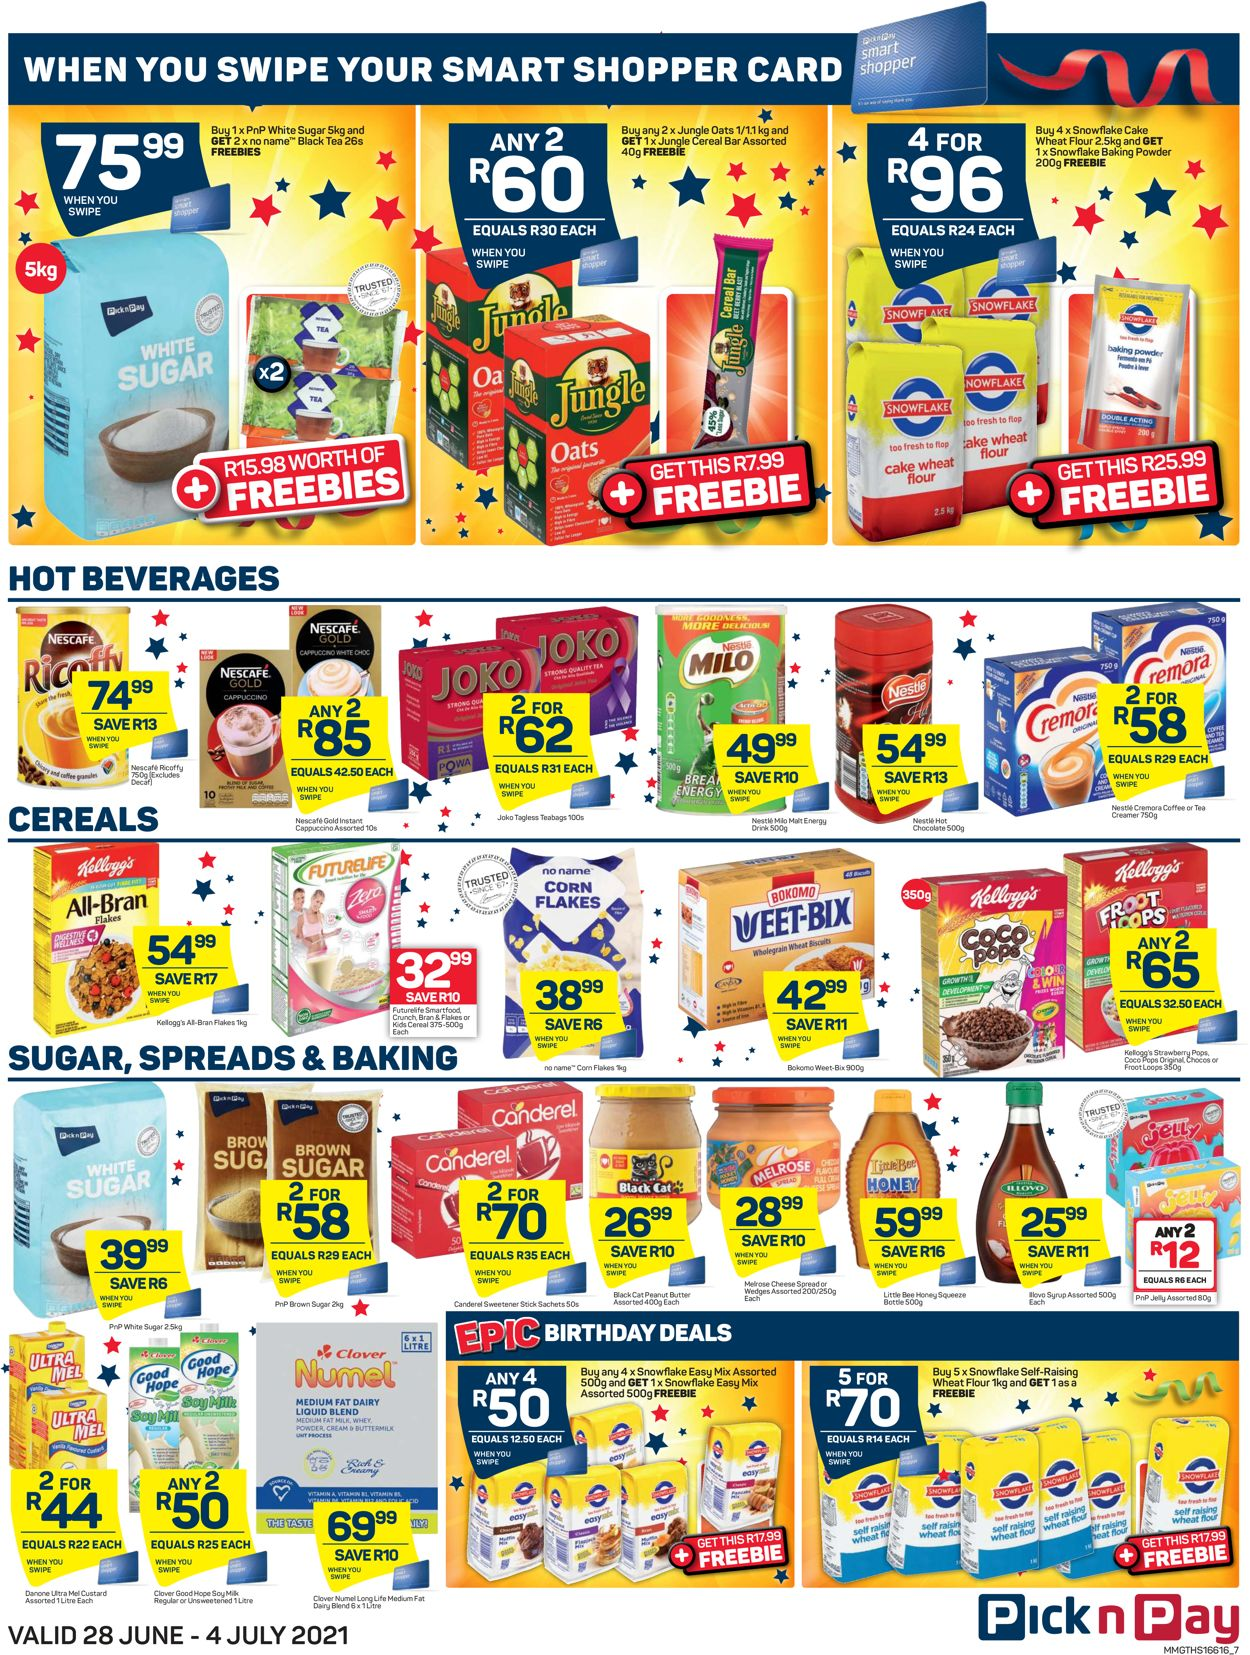 Pick n Pay Catalogue - 2021/06/28-2021/07/04 (Page 7)